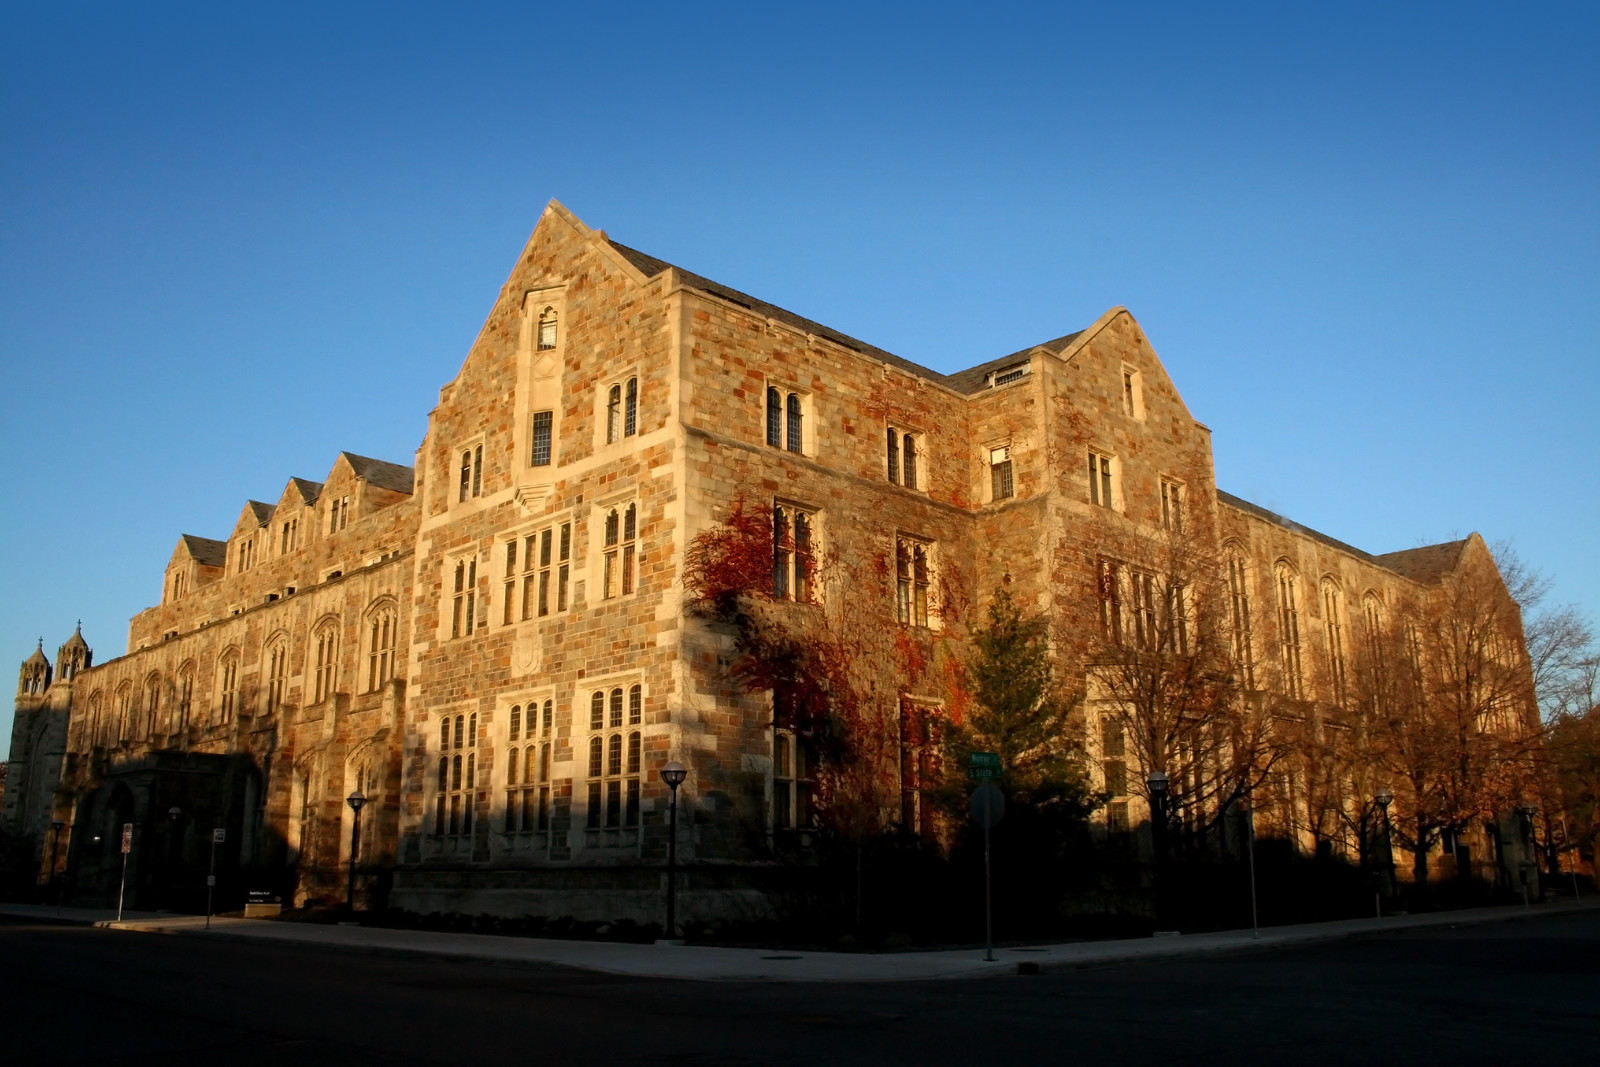 Historic brick building at the University of Michigan in Ann Arbor, in the gall with bare trees outlining the buiding